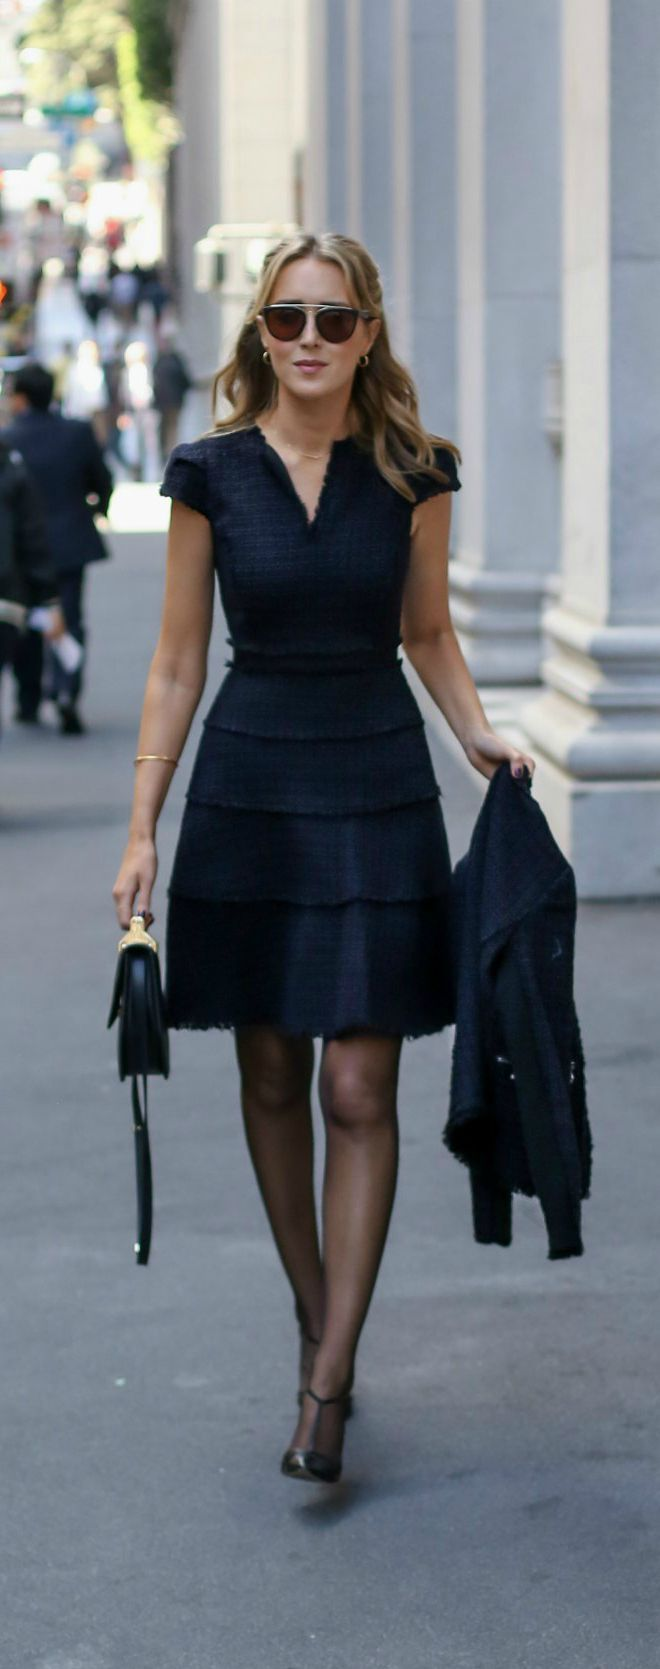 Black And Navy Tweed Fit And Flare Short Sleeve Dress With